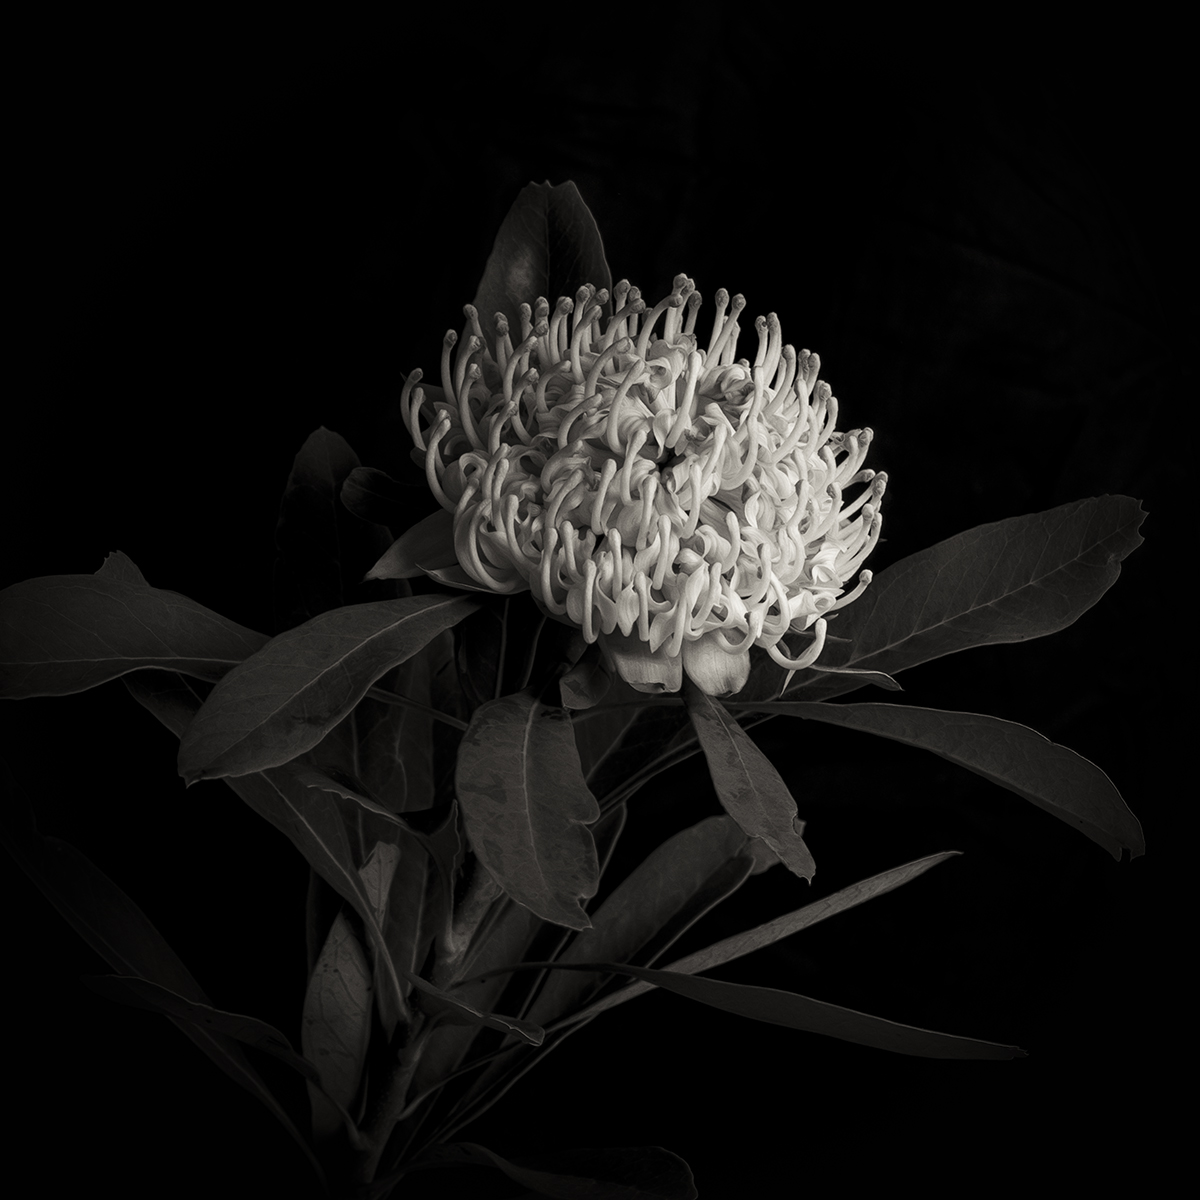 White Waratah on Black